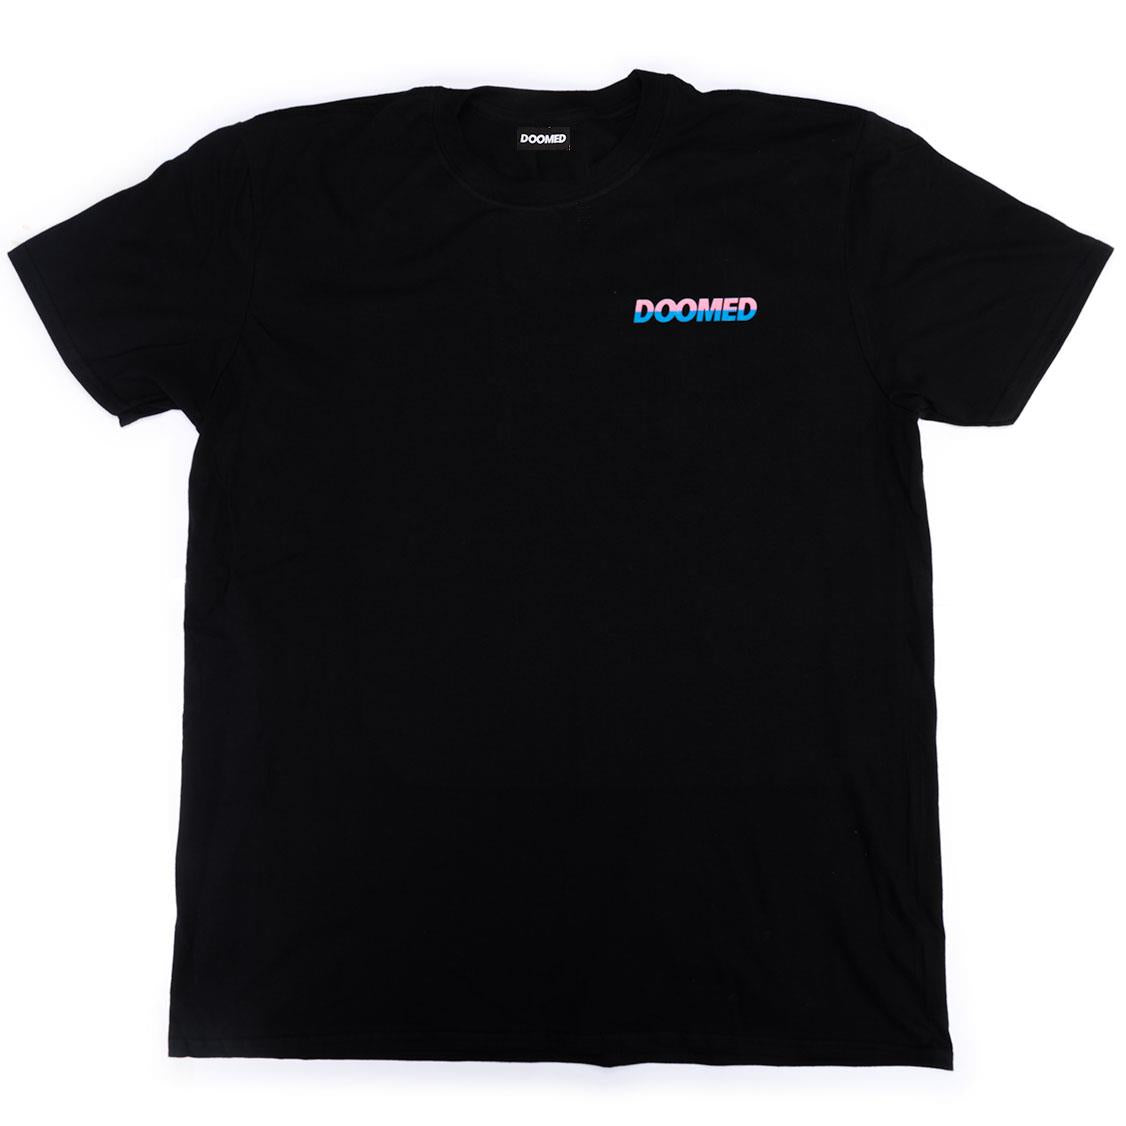 Doomed Yogurt T-Shirt - Black